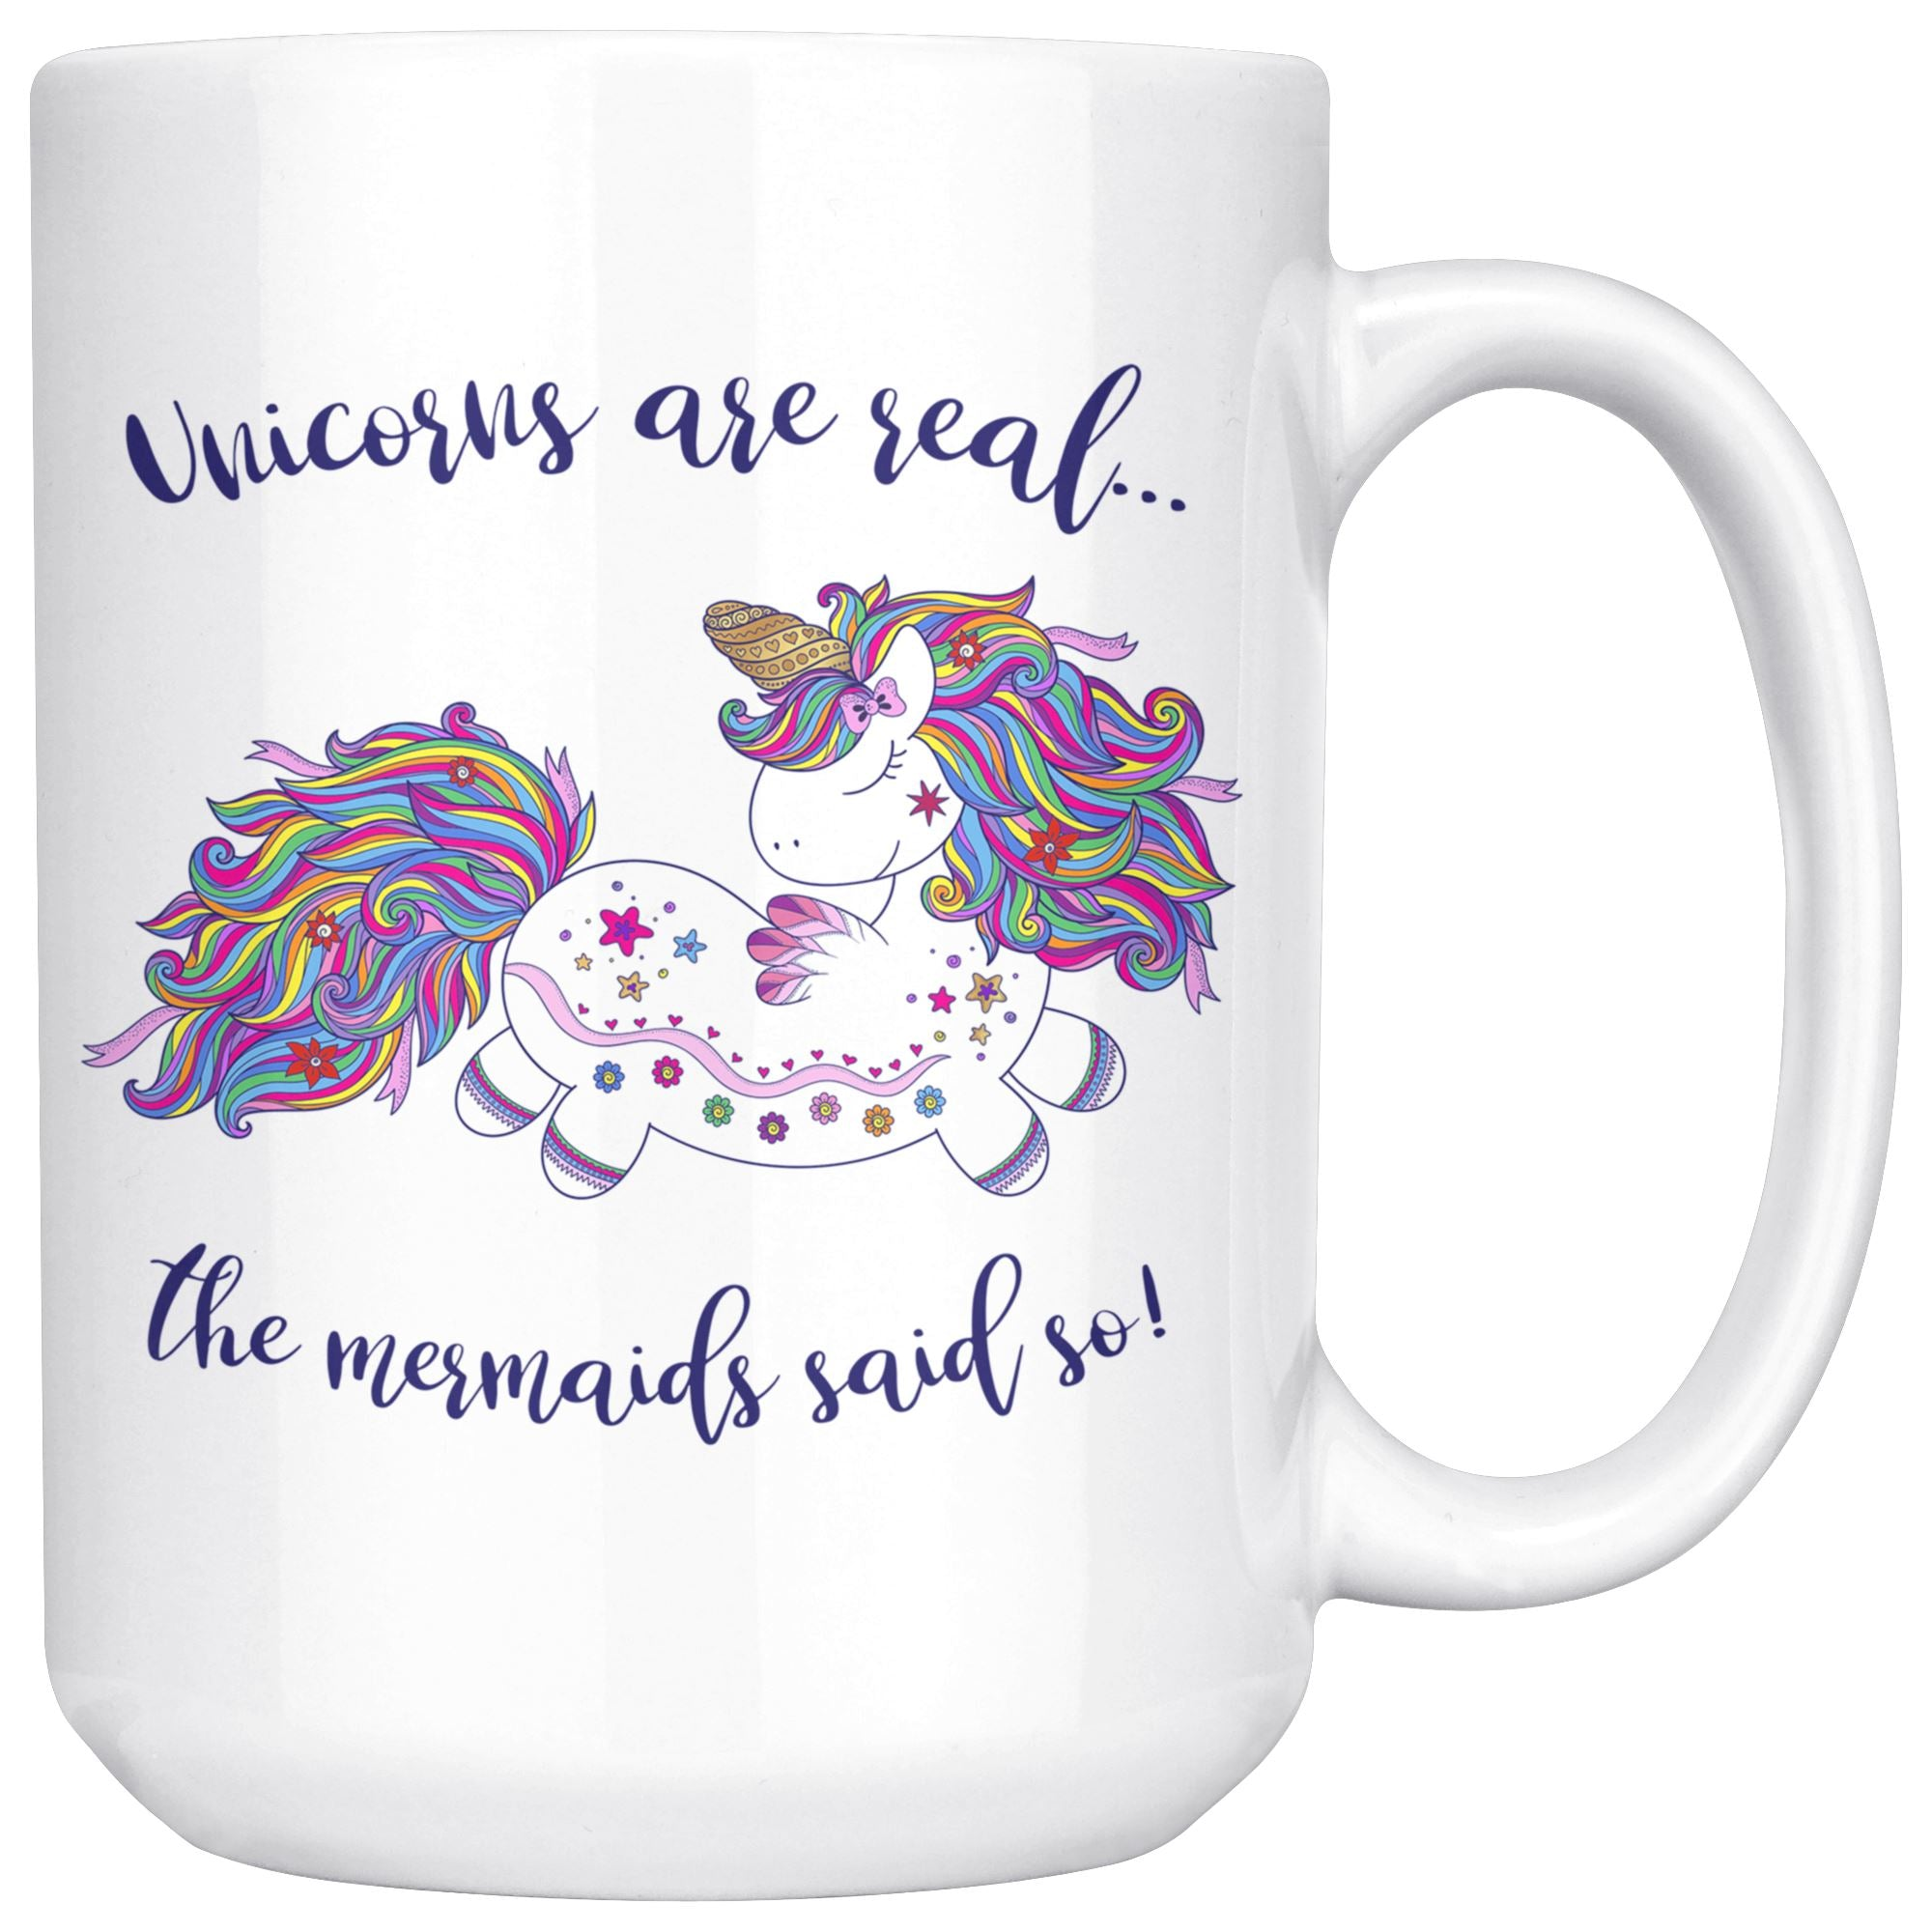 Unicorns Are Real, coffee mug, little mermaid, my little pony, disney princess